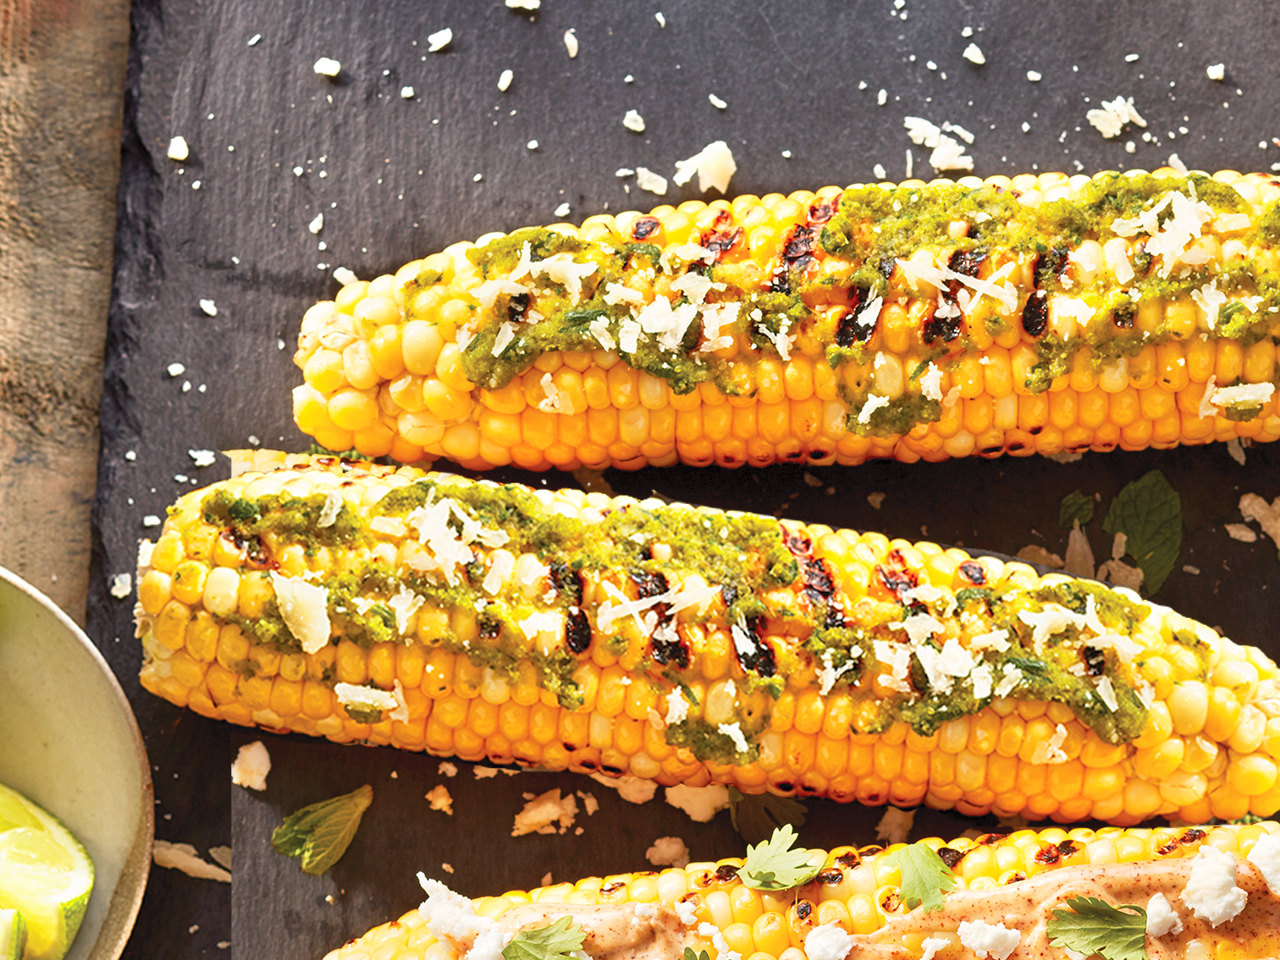 Pesto parmesan grilled corn